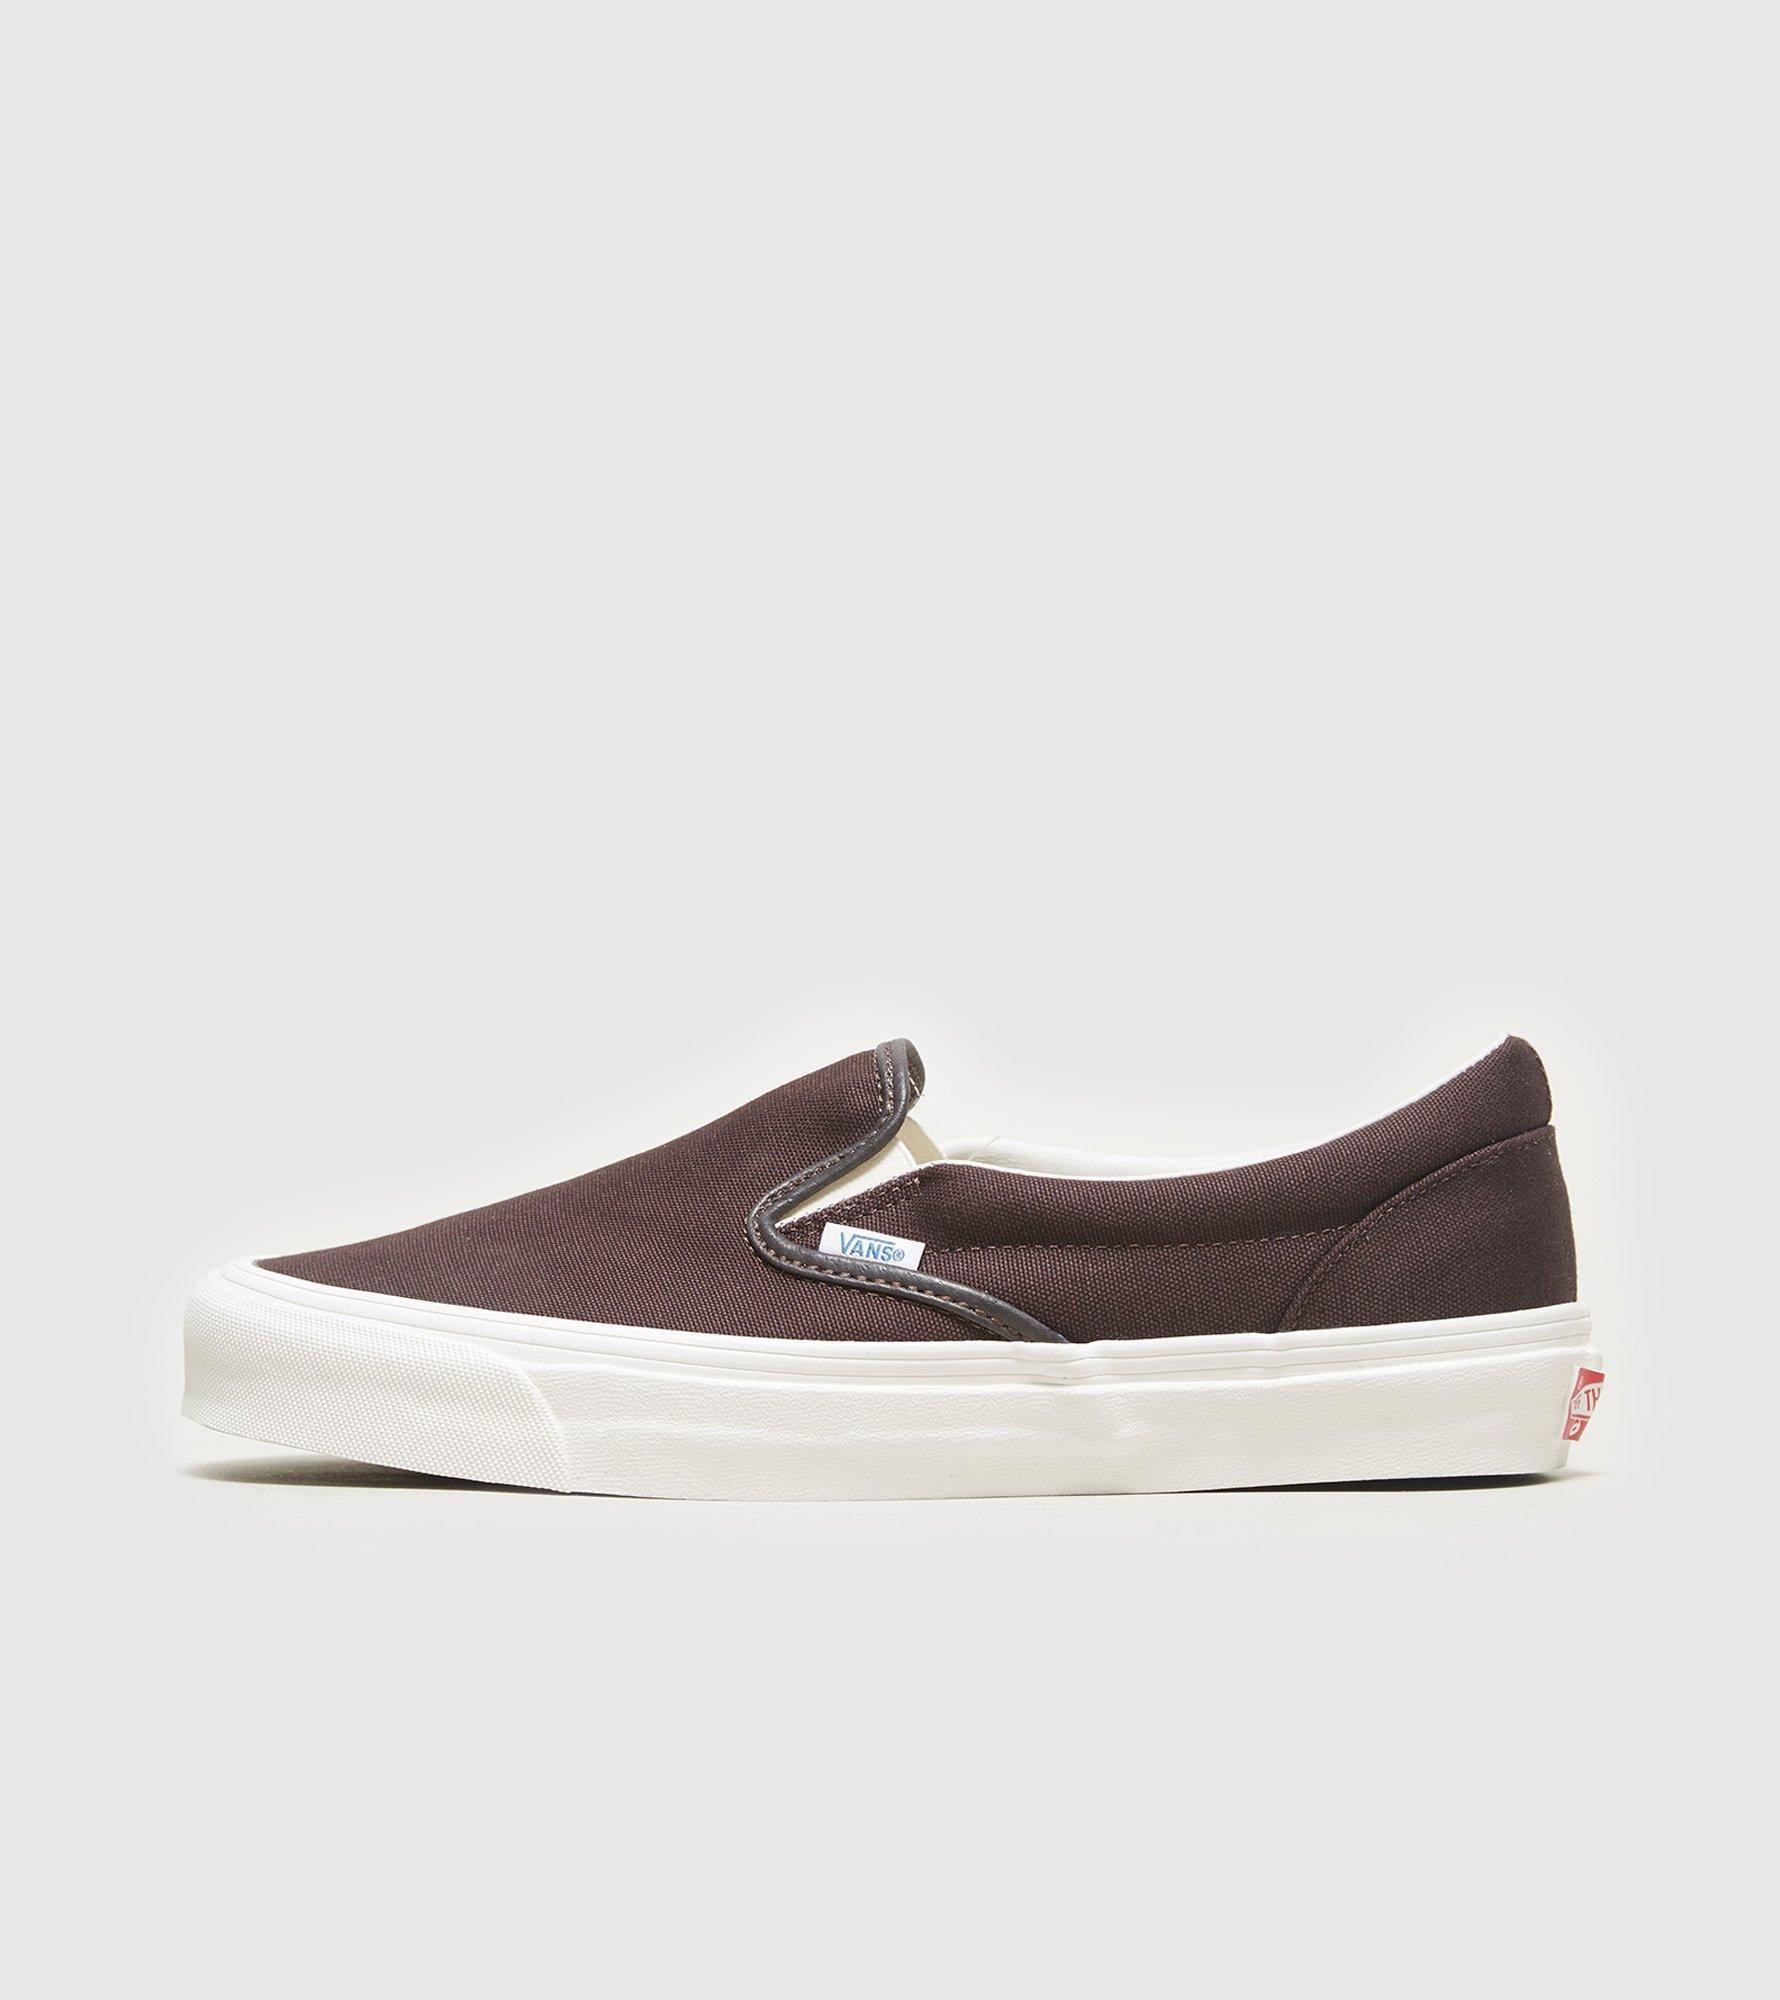 Gucci License Plate >> Vans Vault Og Classic Slip-on in Brown for Men | Lyst